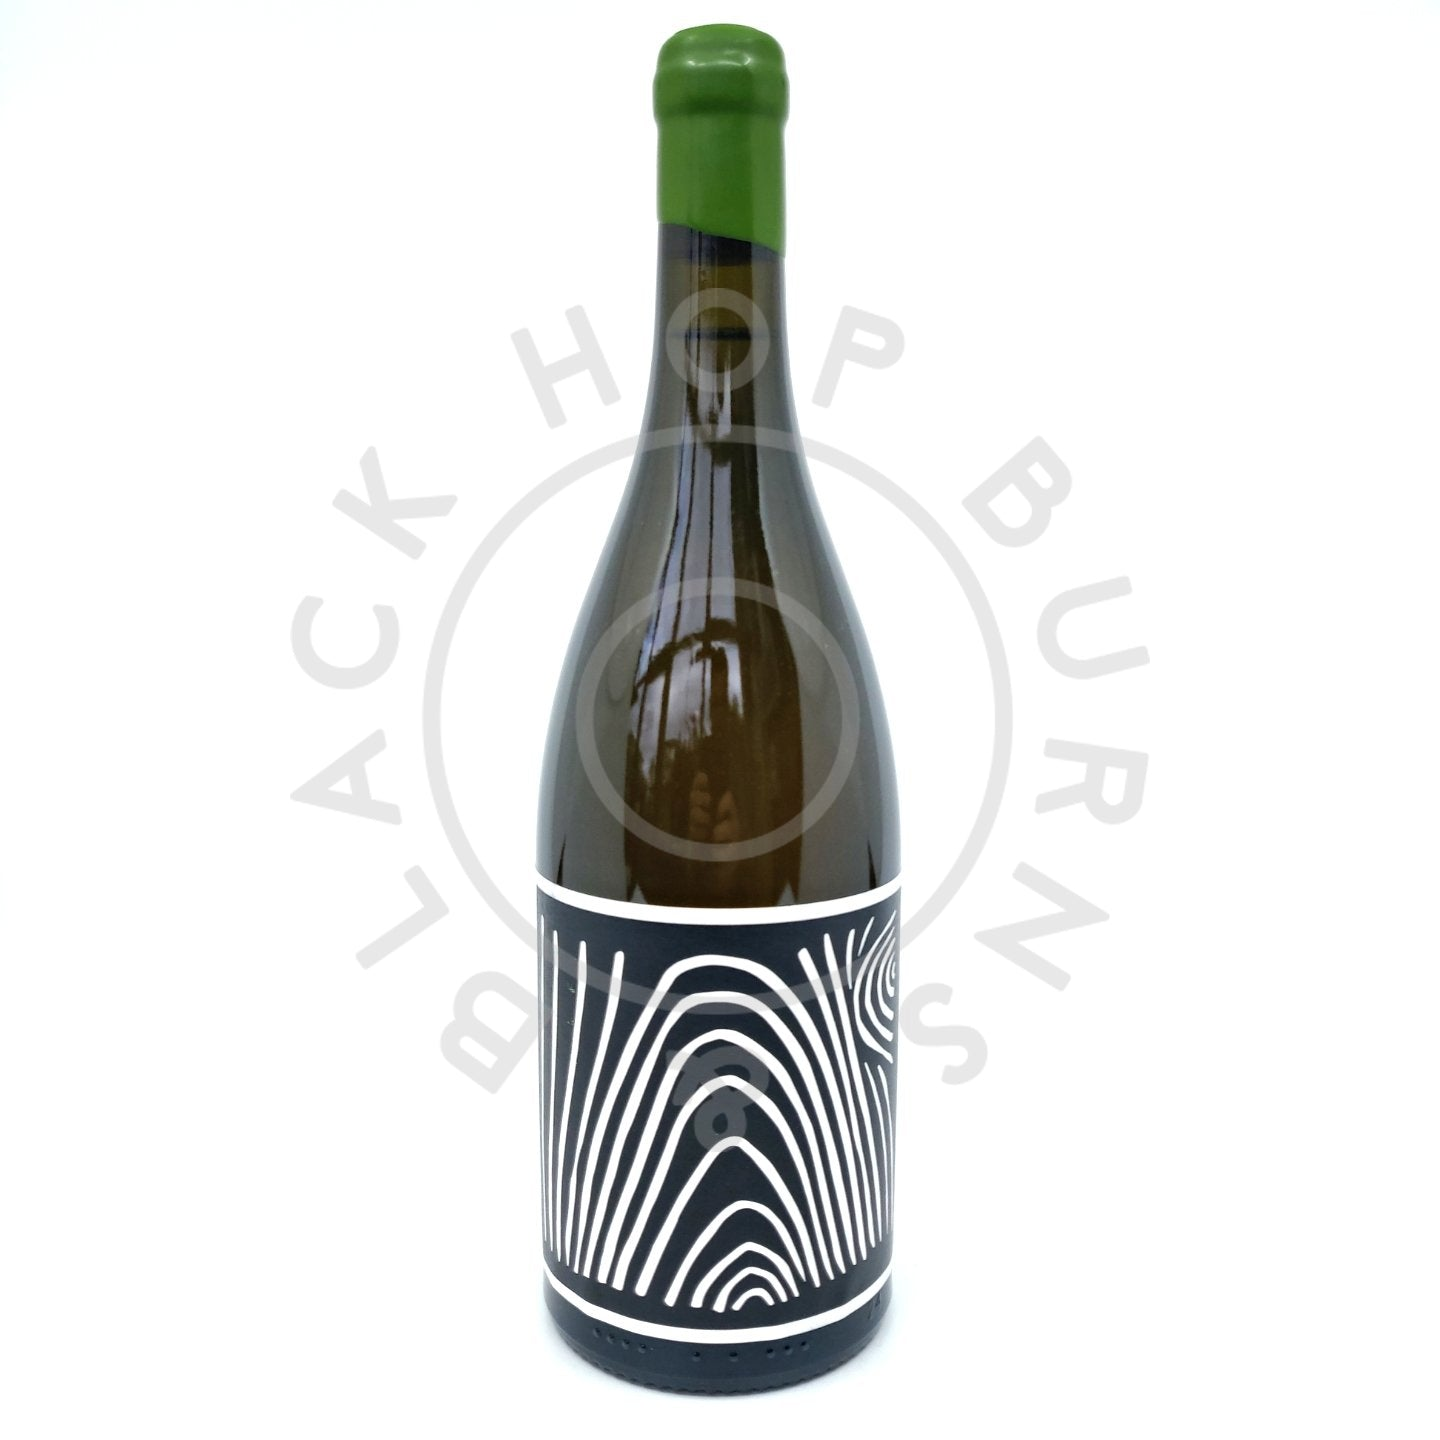 Tillingham Endgrain 2019 10% (750ml)-Hop Burns & Black